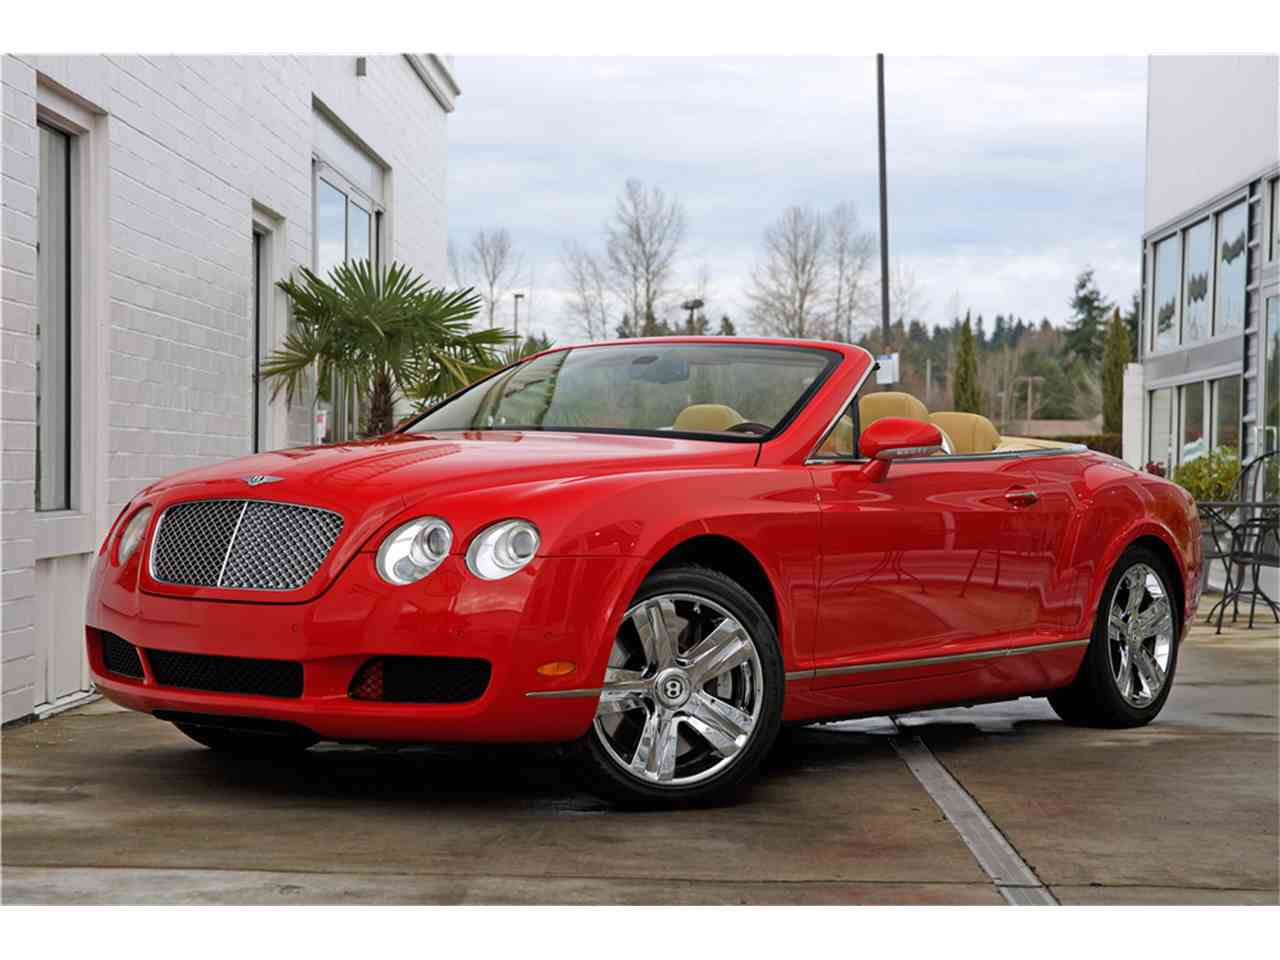 bentley the flickr gtc car wiki wikipedia spy gt continental